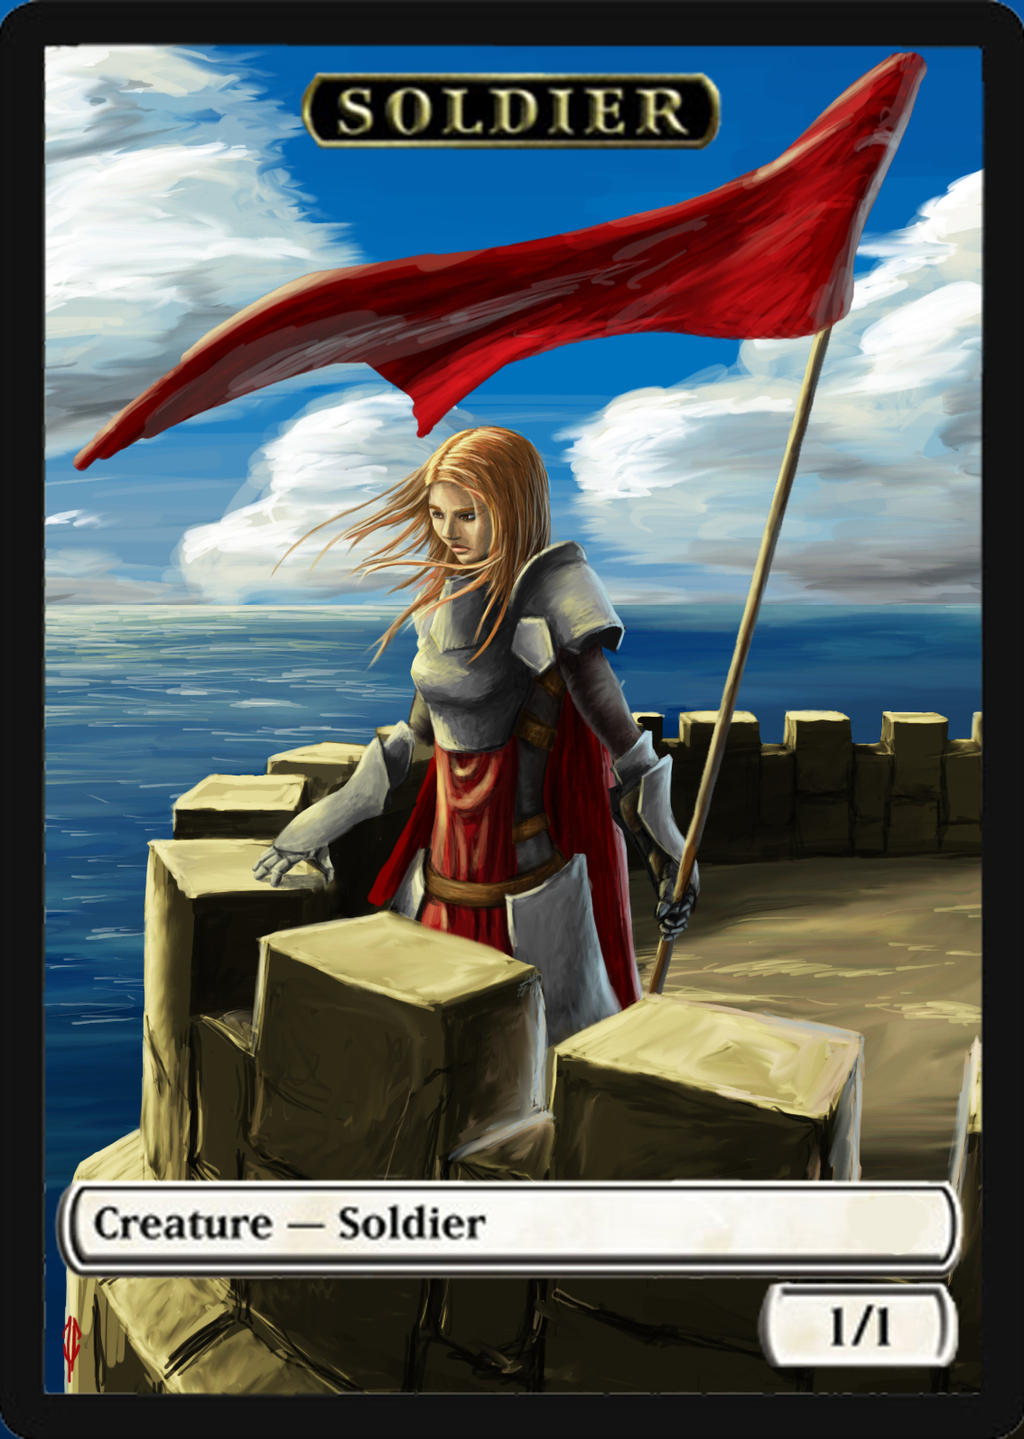 MTG token: Soldier - blue by 0mup on DeviantArt: 0mup.deviantart.com/art/MTG-token-Soldier-blue-355237021